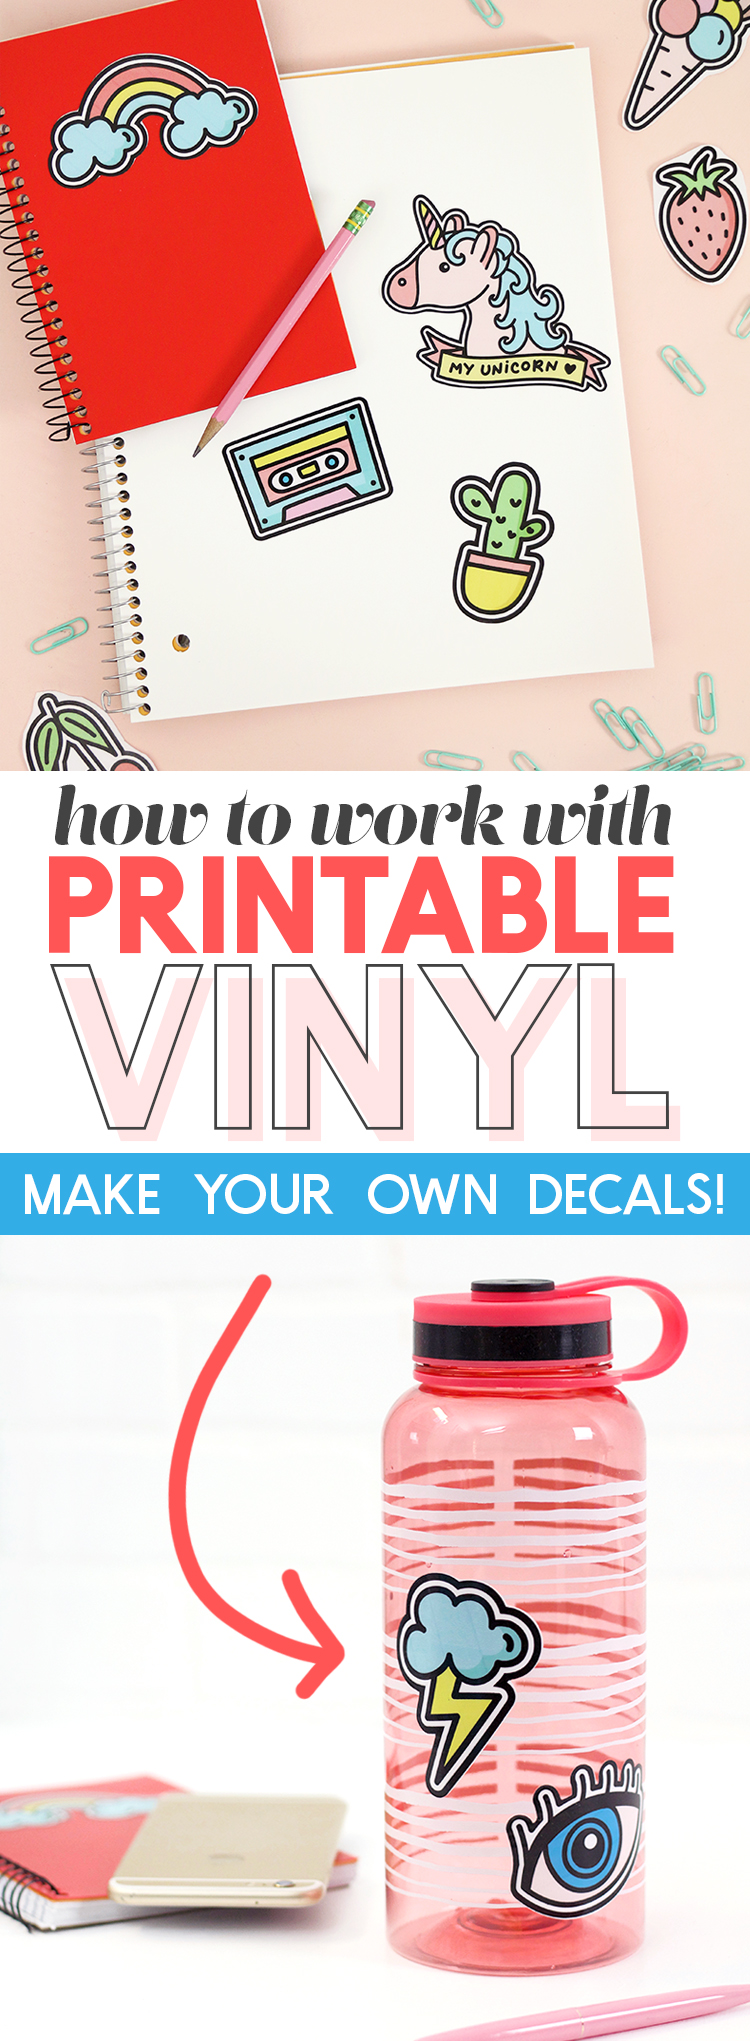 picture regarding How to Use Printable Htv called How in the direction of Function with Printable Vinyl: Do-it-yourself Vinyl Stickers